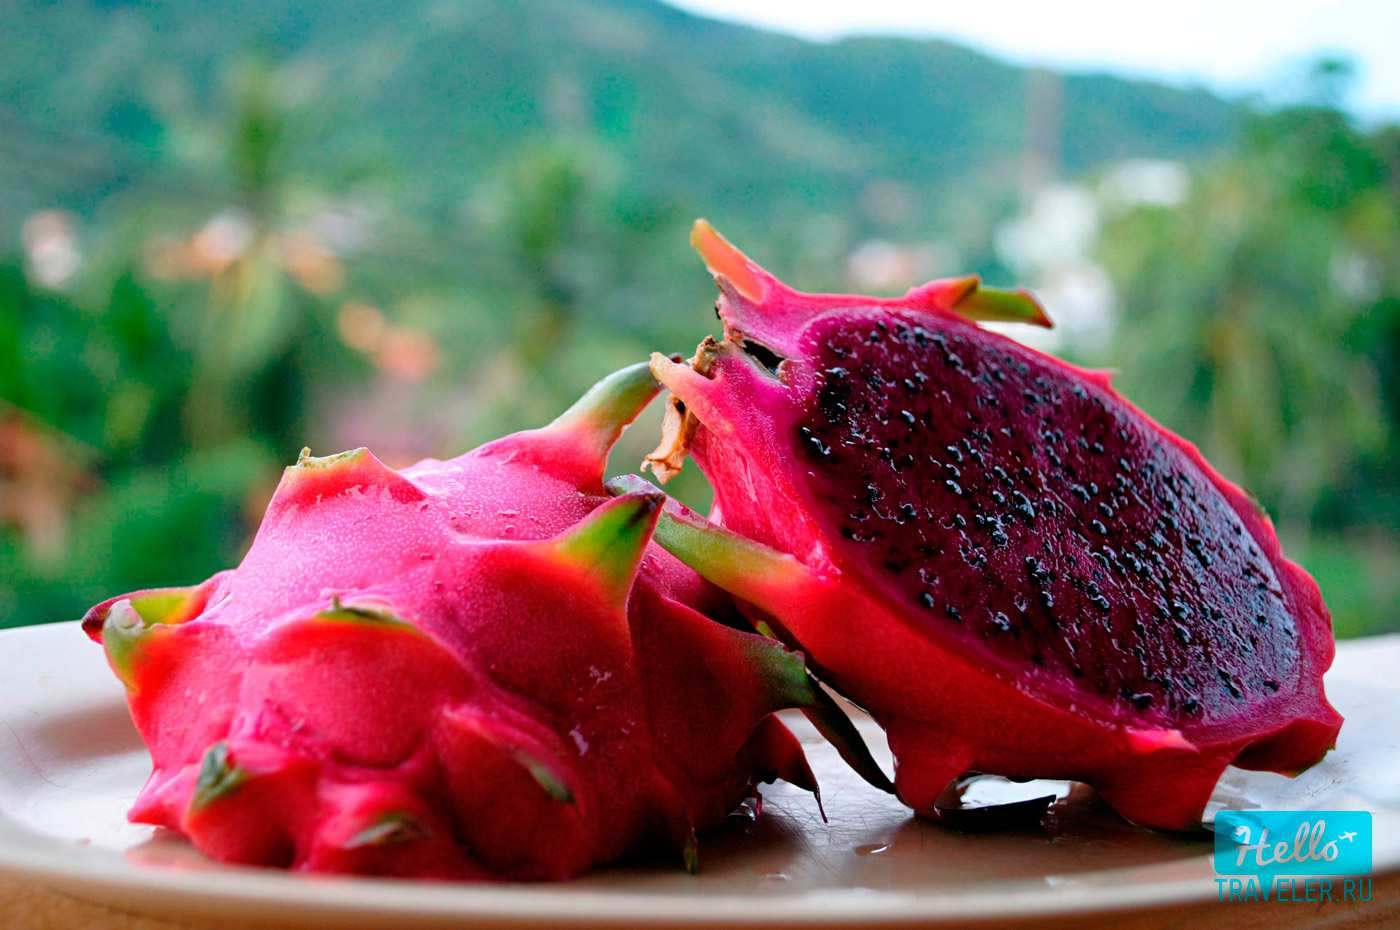 http://fruit-island.ru/images/upload/pitahaya.jpg